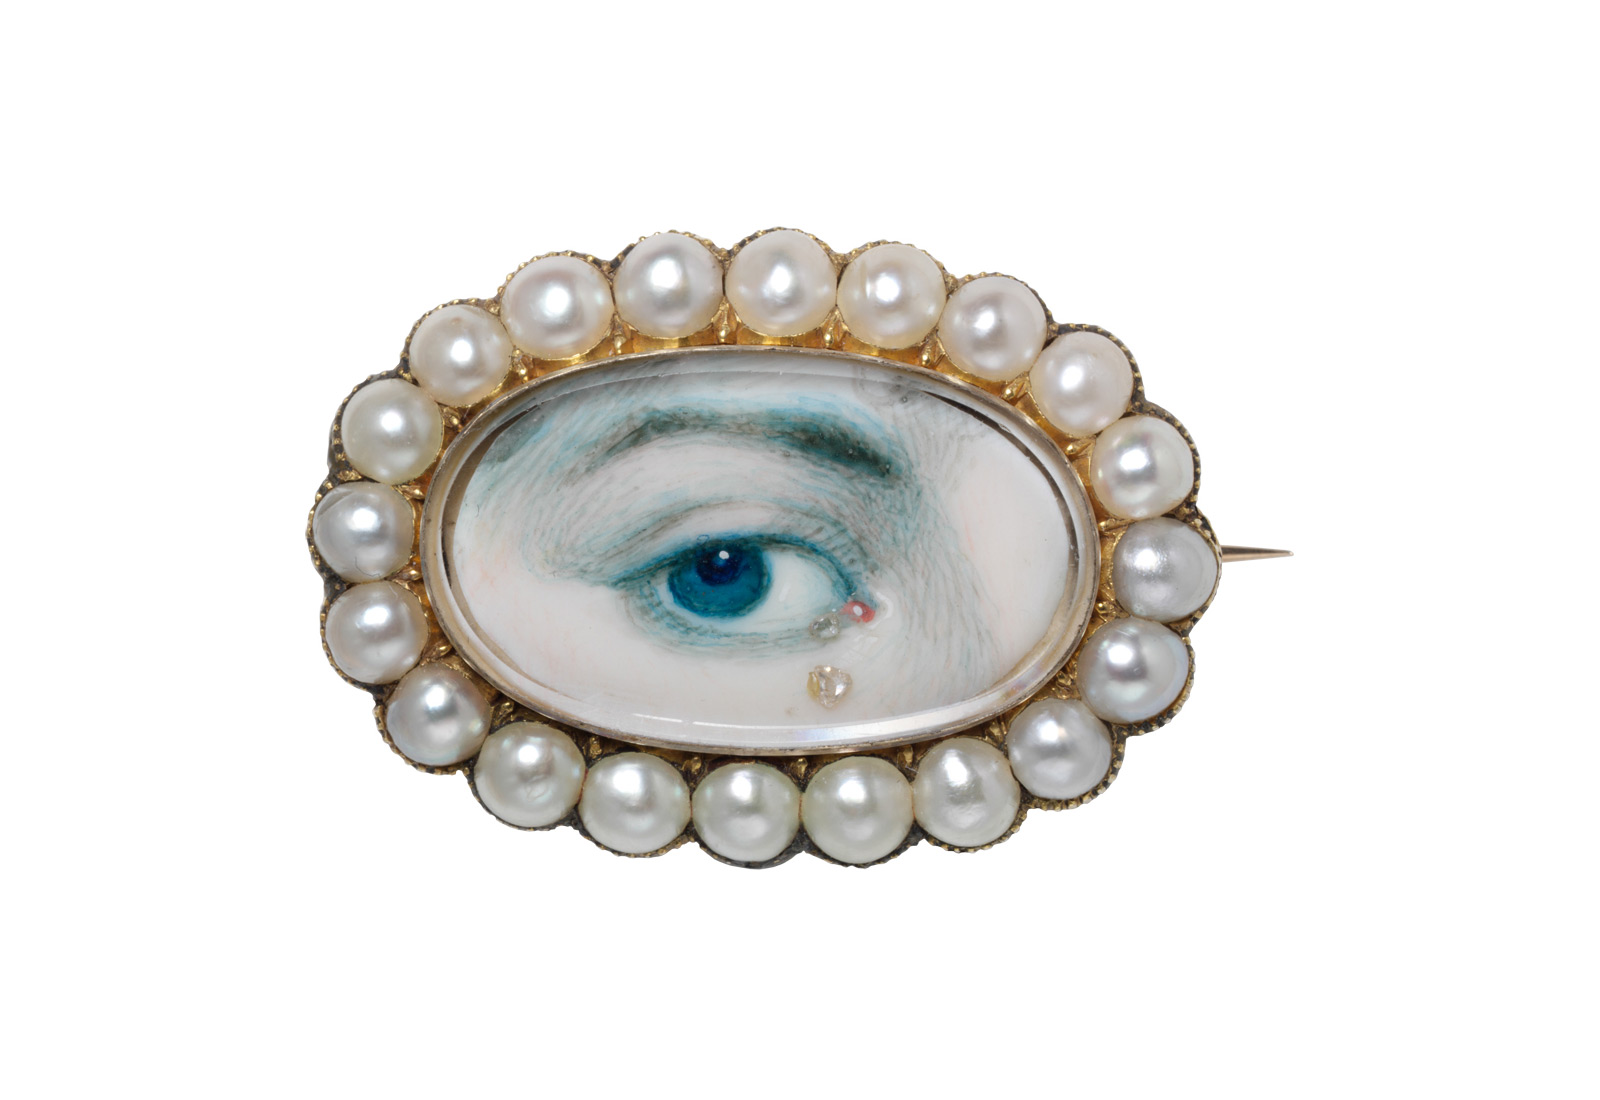 'Lover's Eye' brooch c. early 19th Century, displayed at Victoria and Albert Museum, London